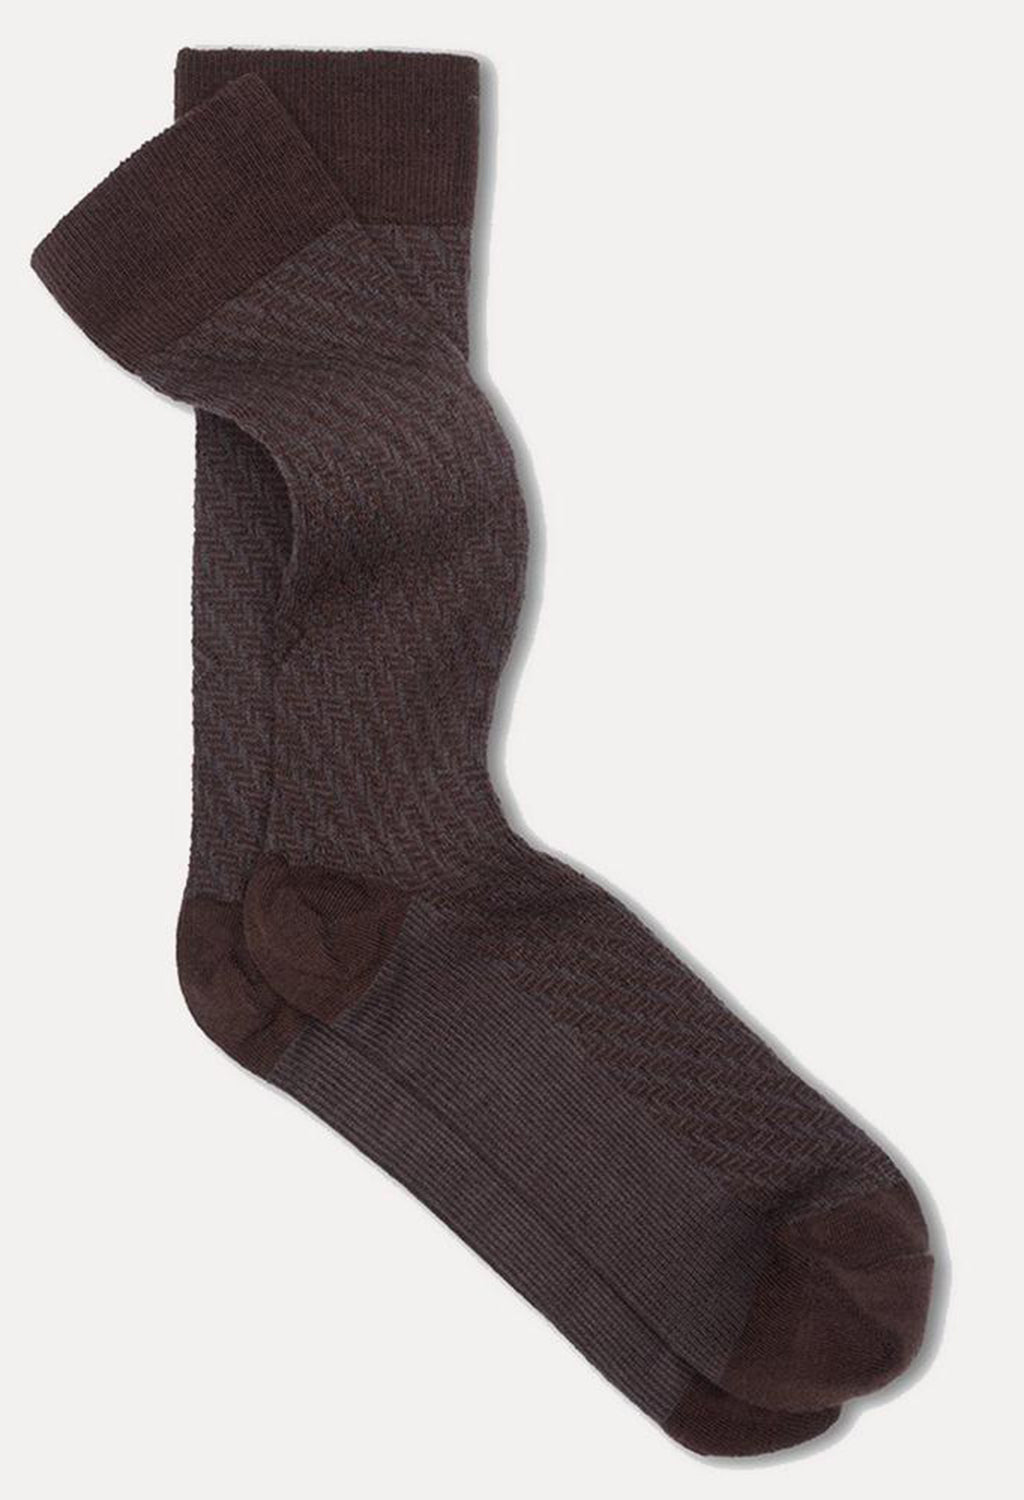 Ace & Everett Core Socks in Forest Green - RUST & Co.